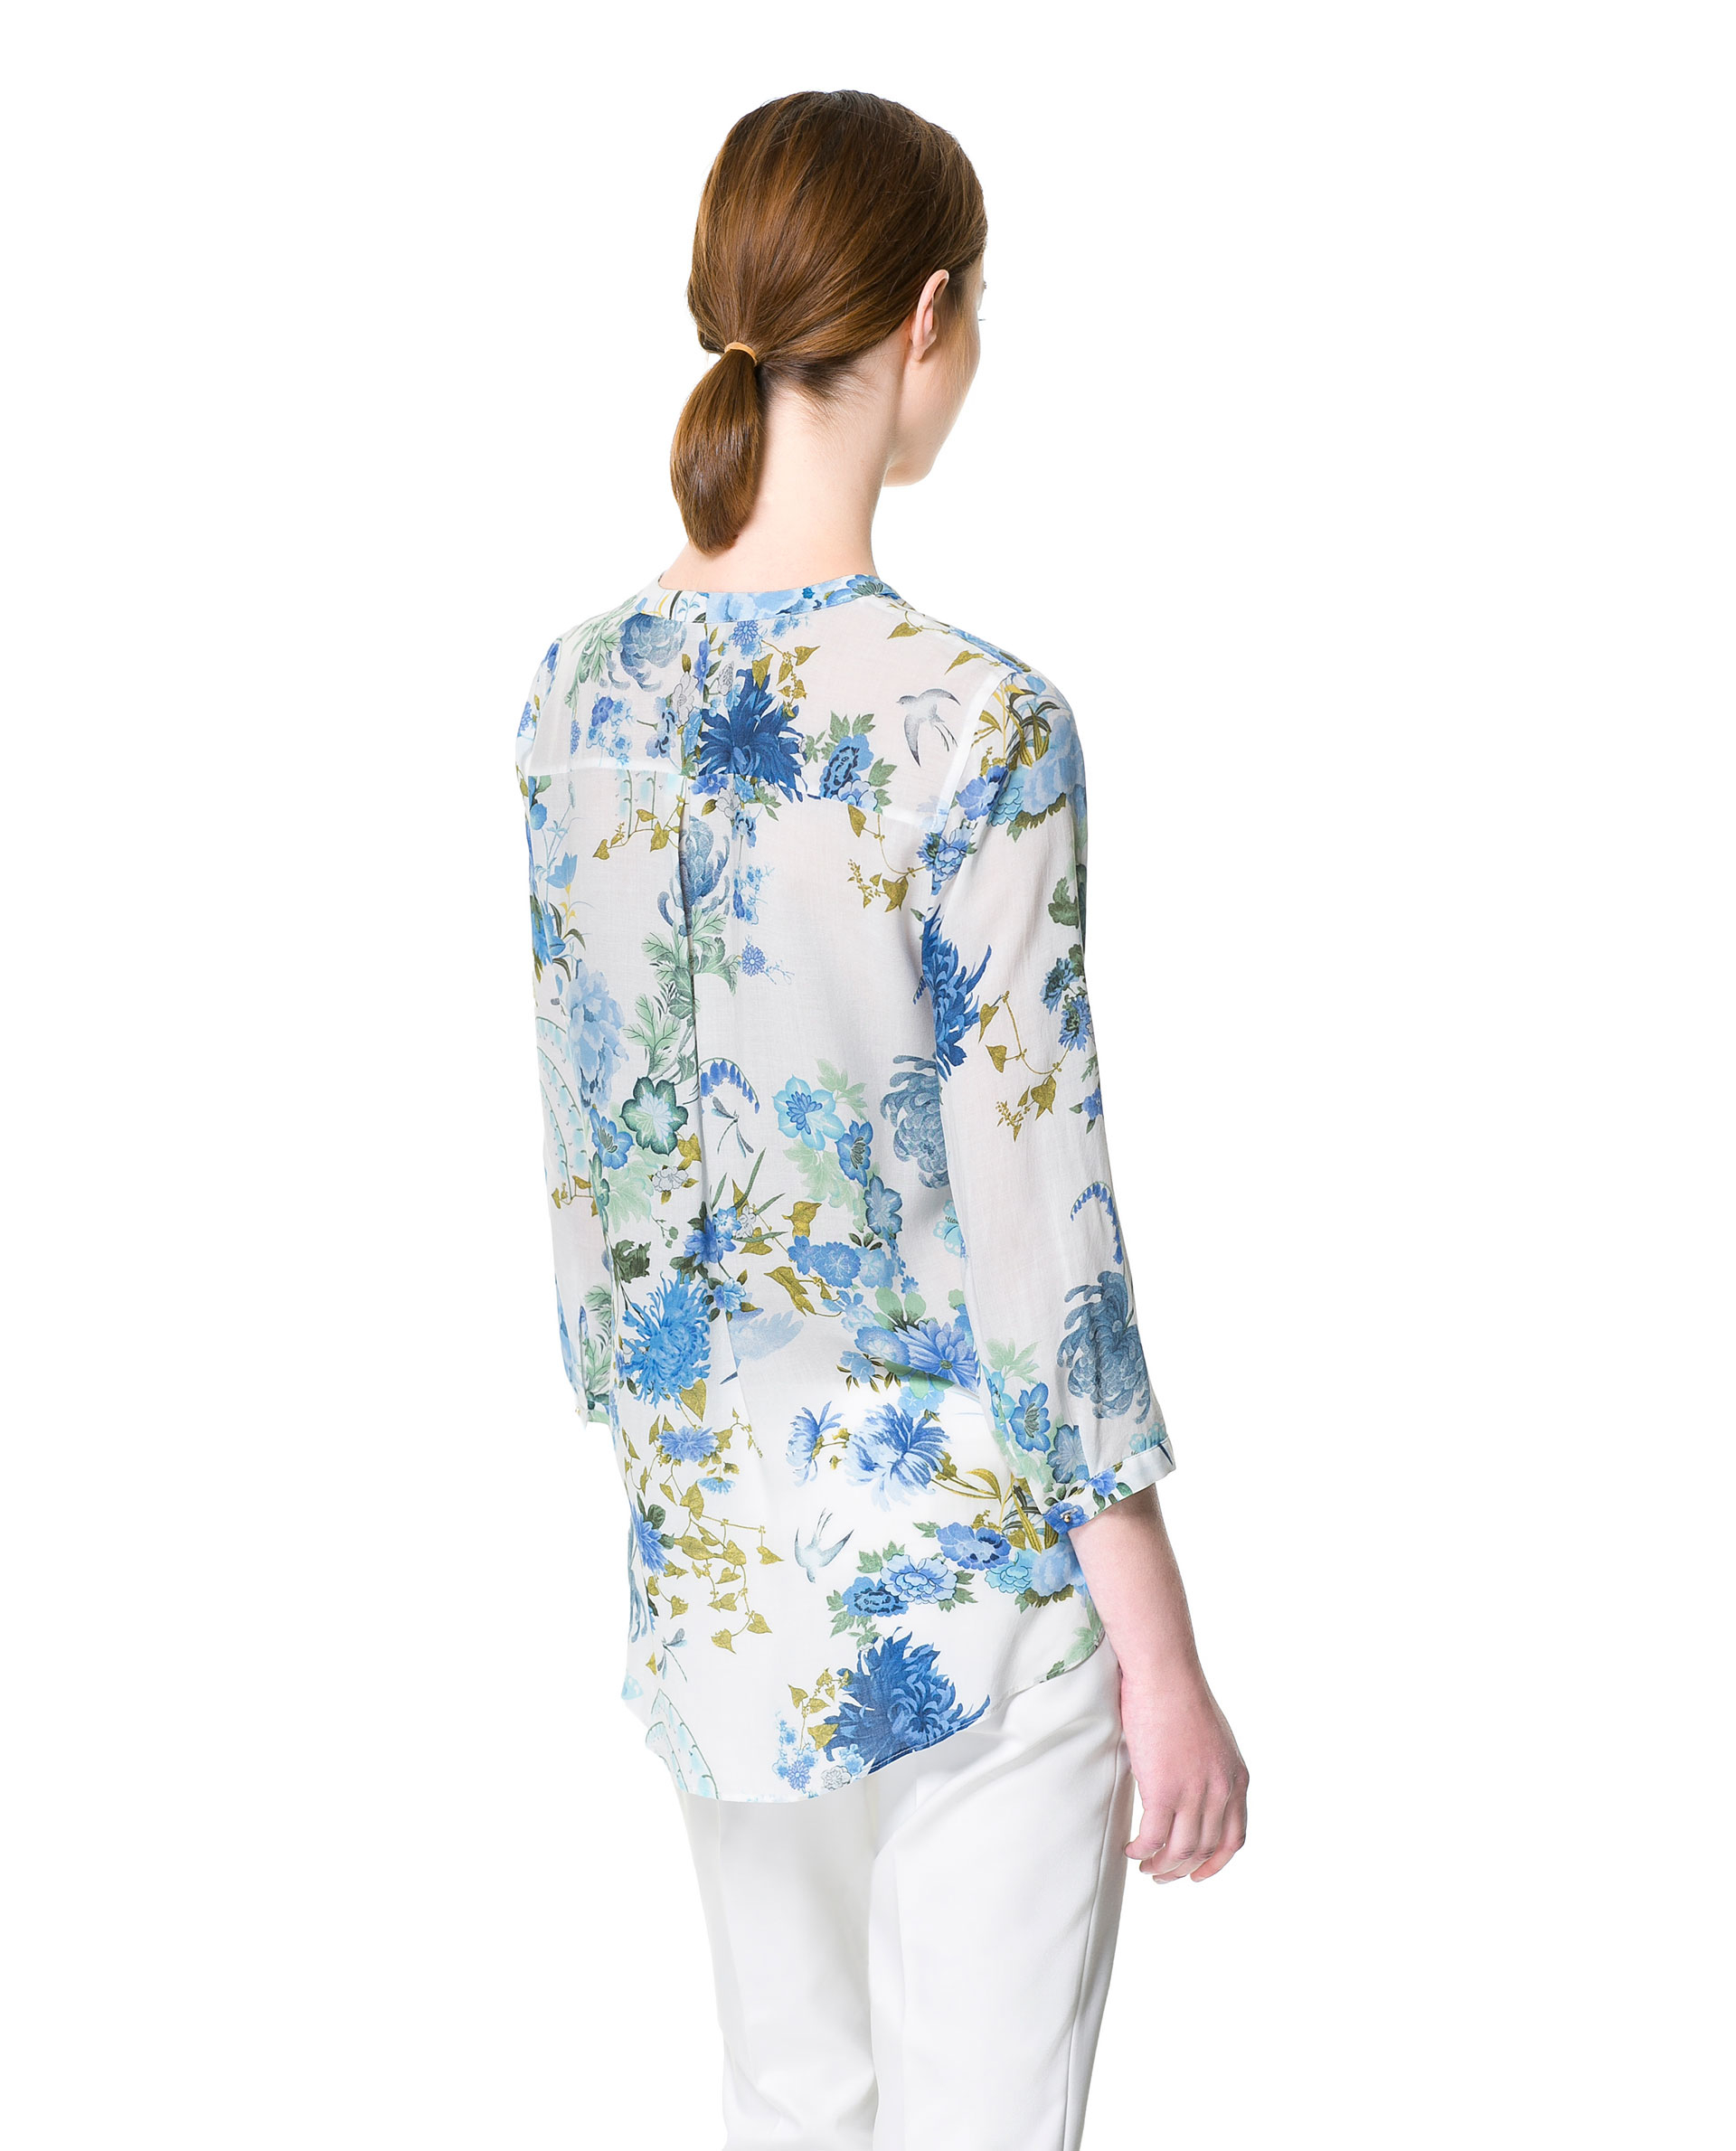 Zara Blue And White Floral Blouse 49